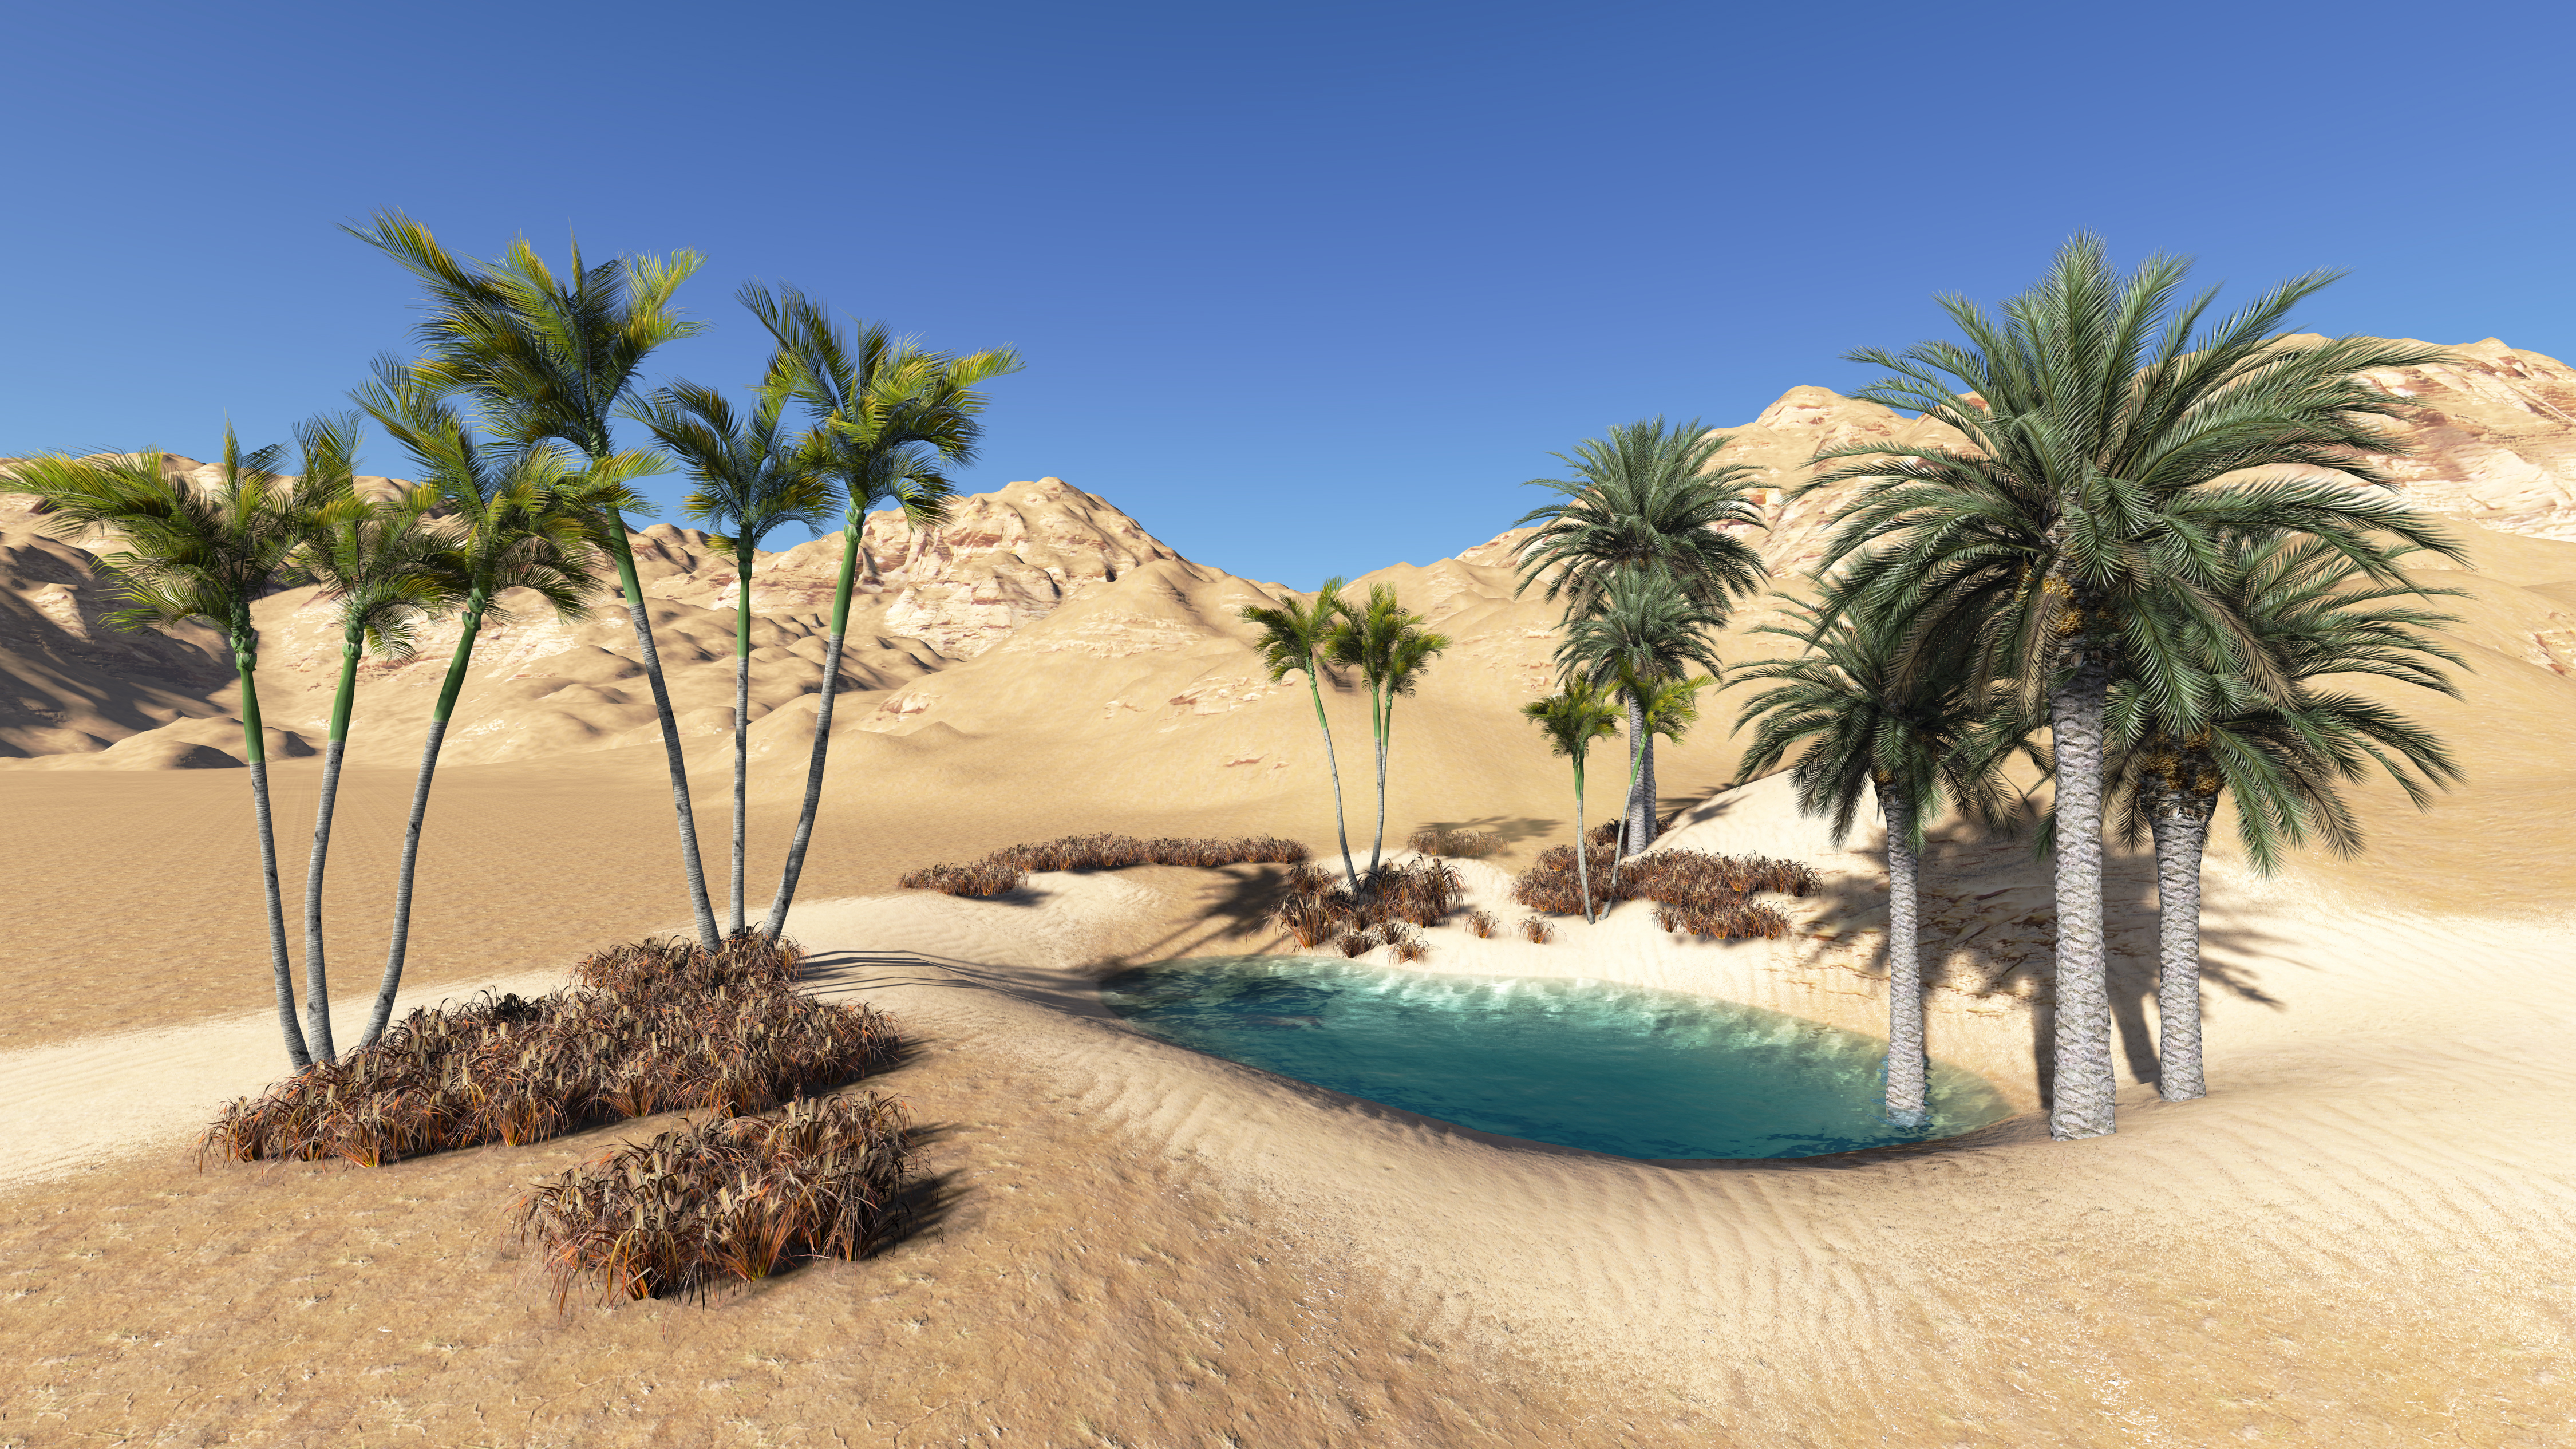 Oasis In The Desert Wallpapers High Quality Download Free